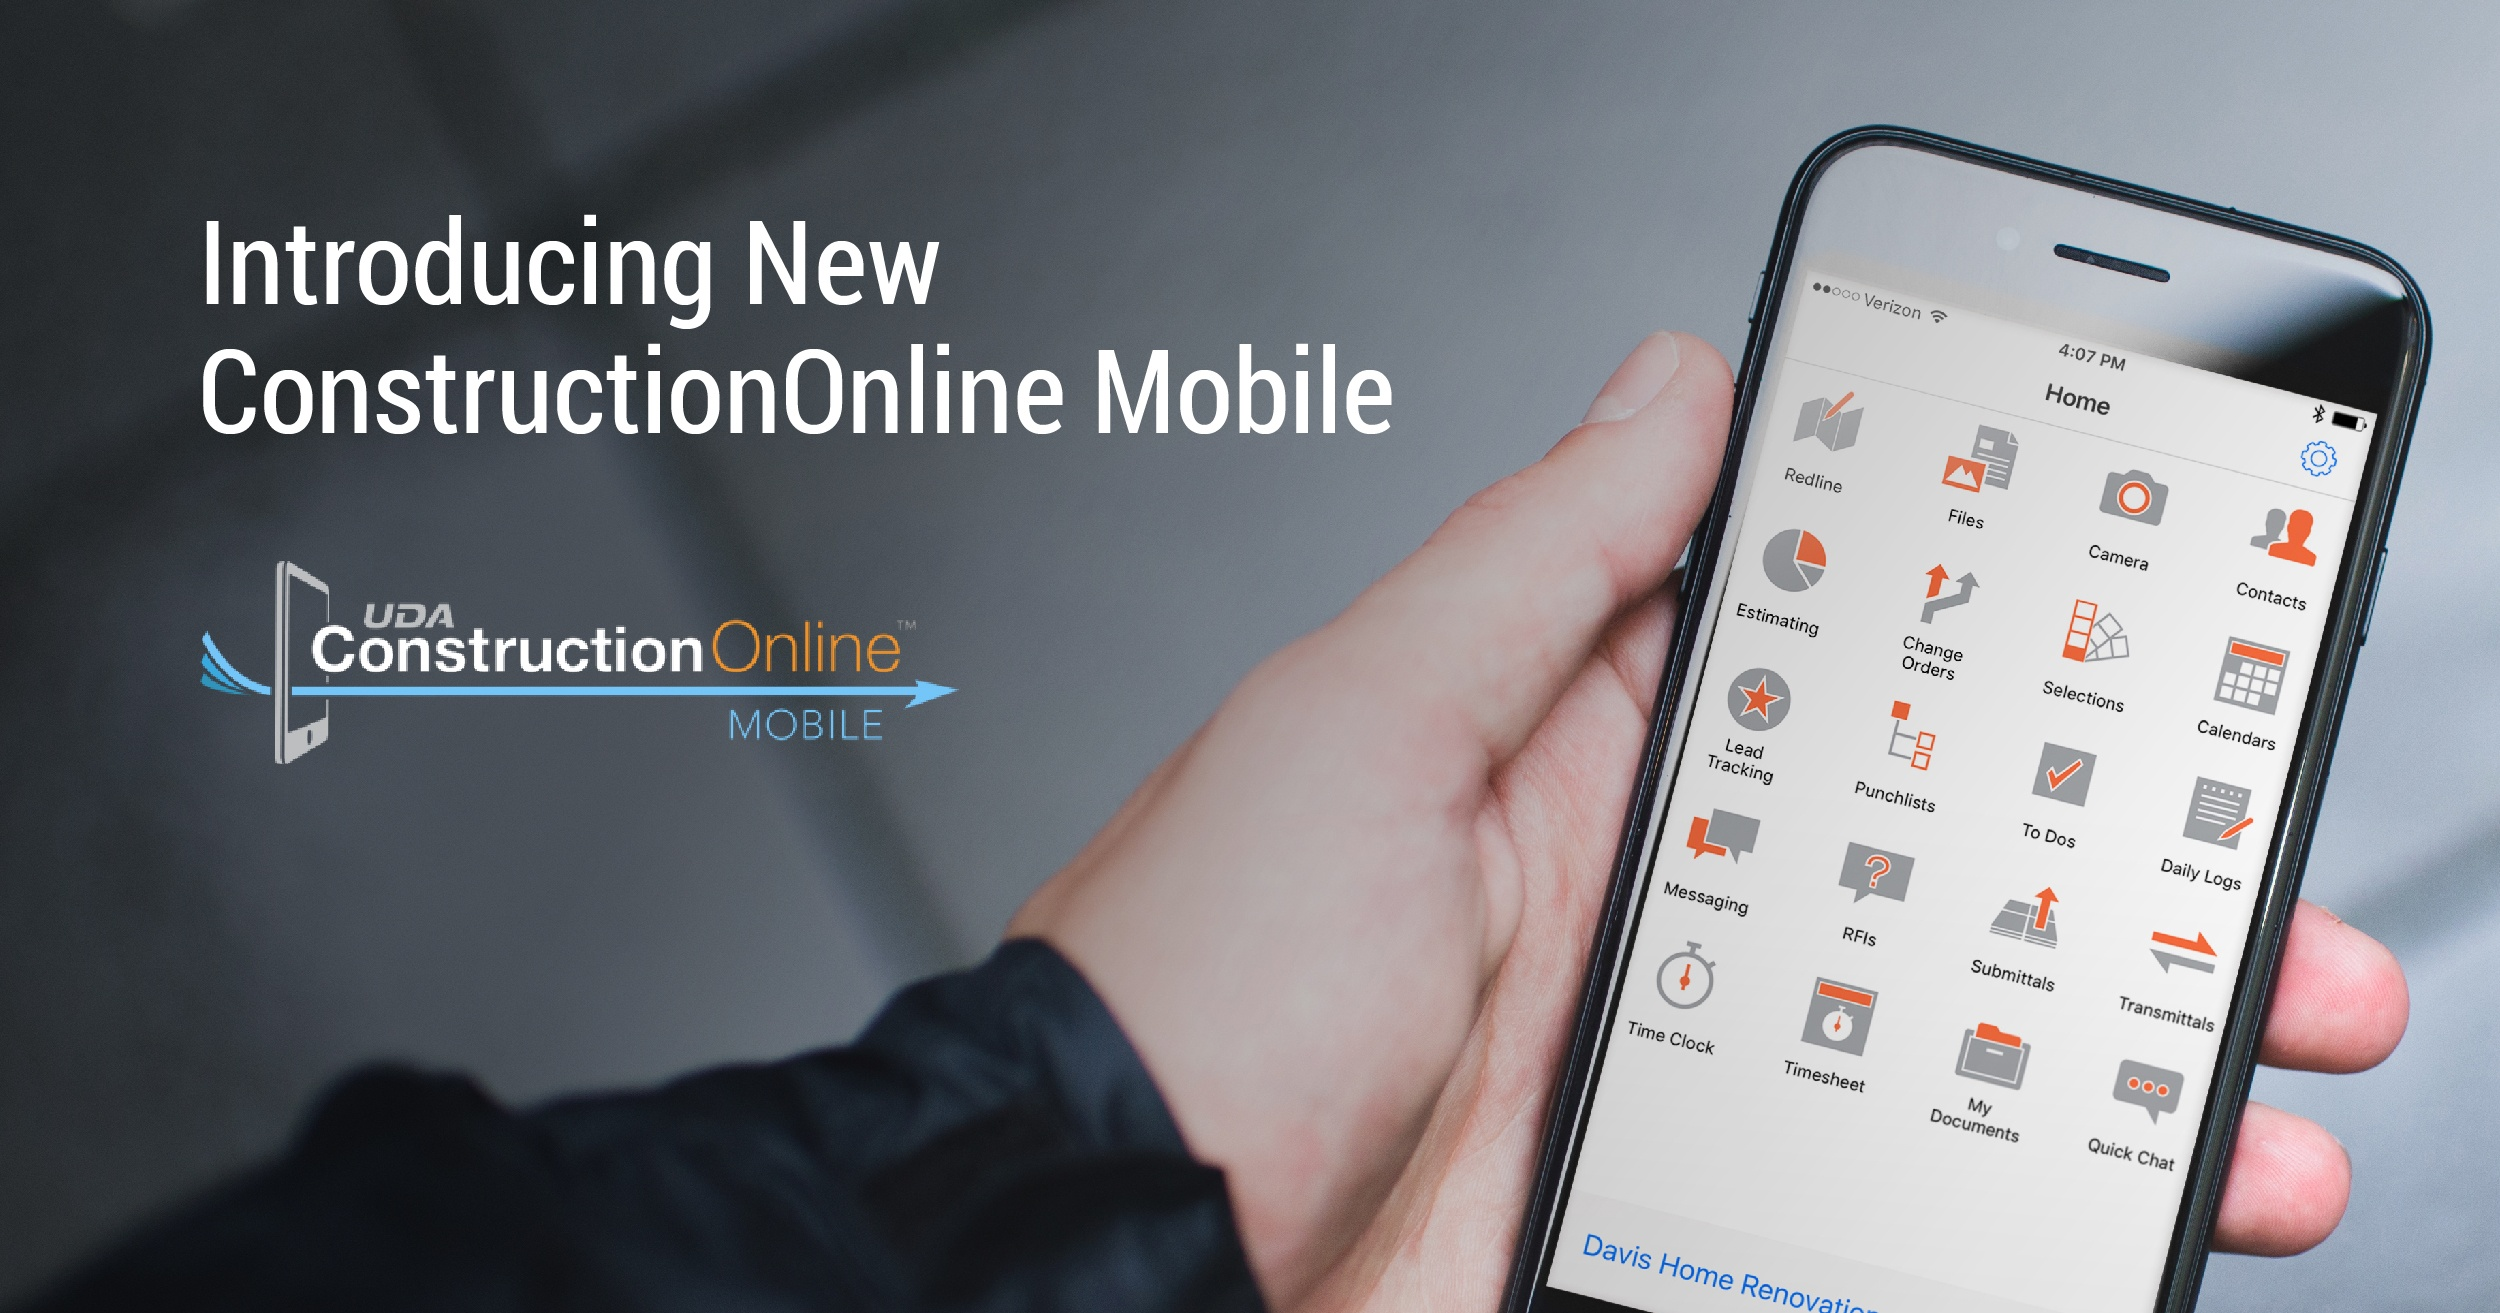 New, Small, and Powerful: Introducing the ConstructionOnline Mobile App